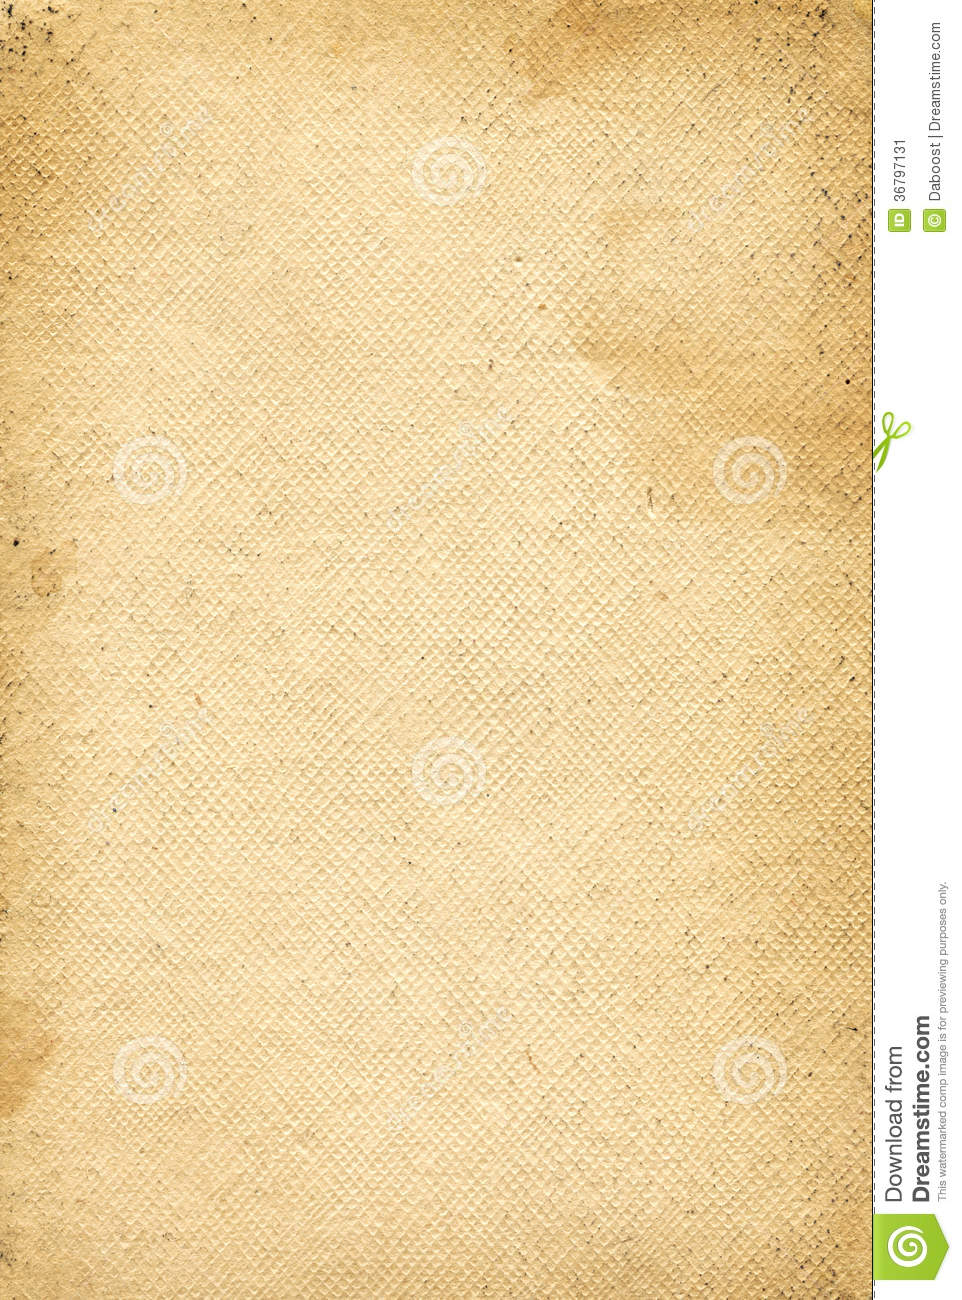 Old Grunge Canvas Paper Texture Stock Image - Image of ...